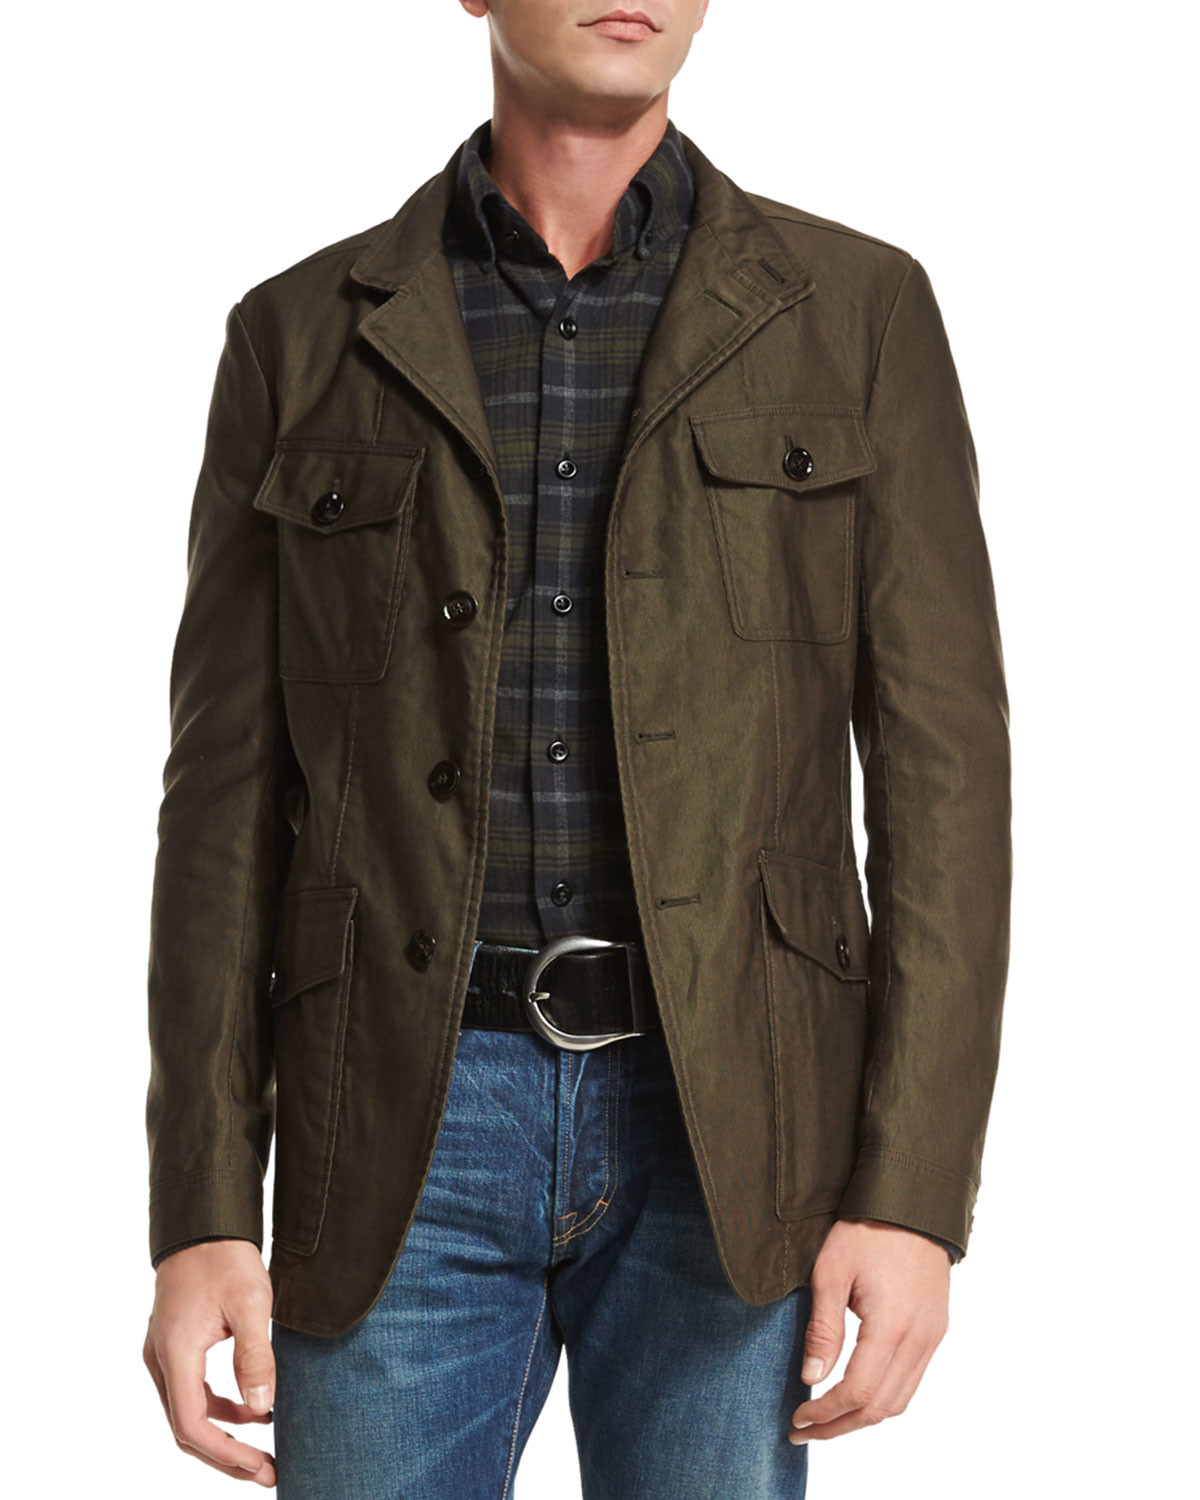 lyst tom ford corded lightweight military jacket in. Black Bedroom Furniture Sets. Home Design Ideas